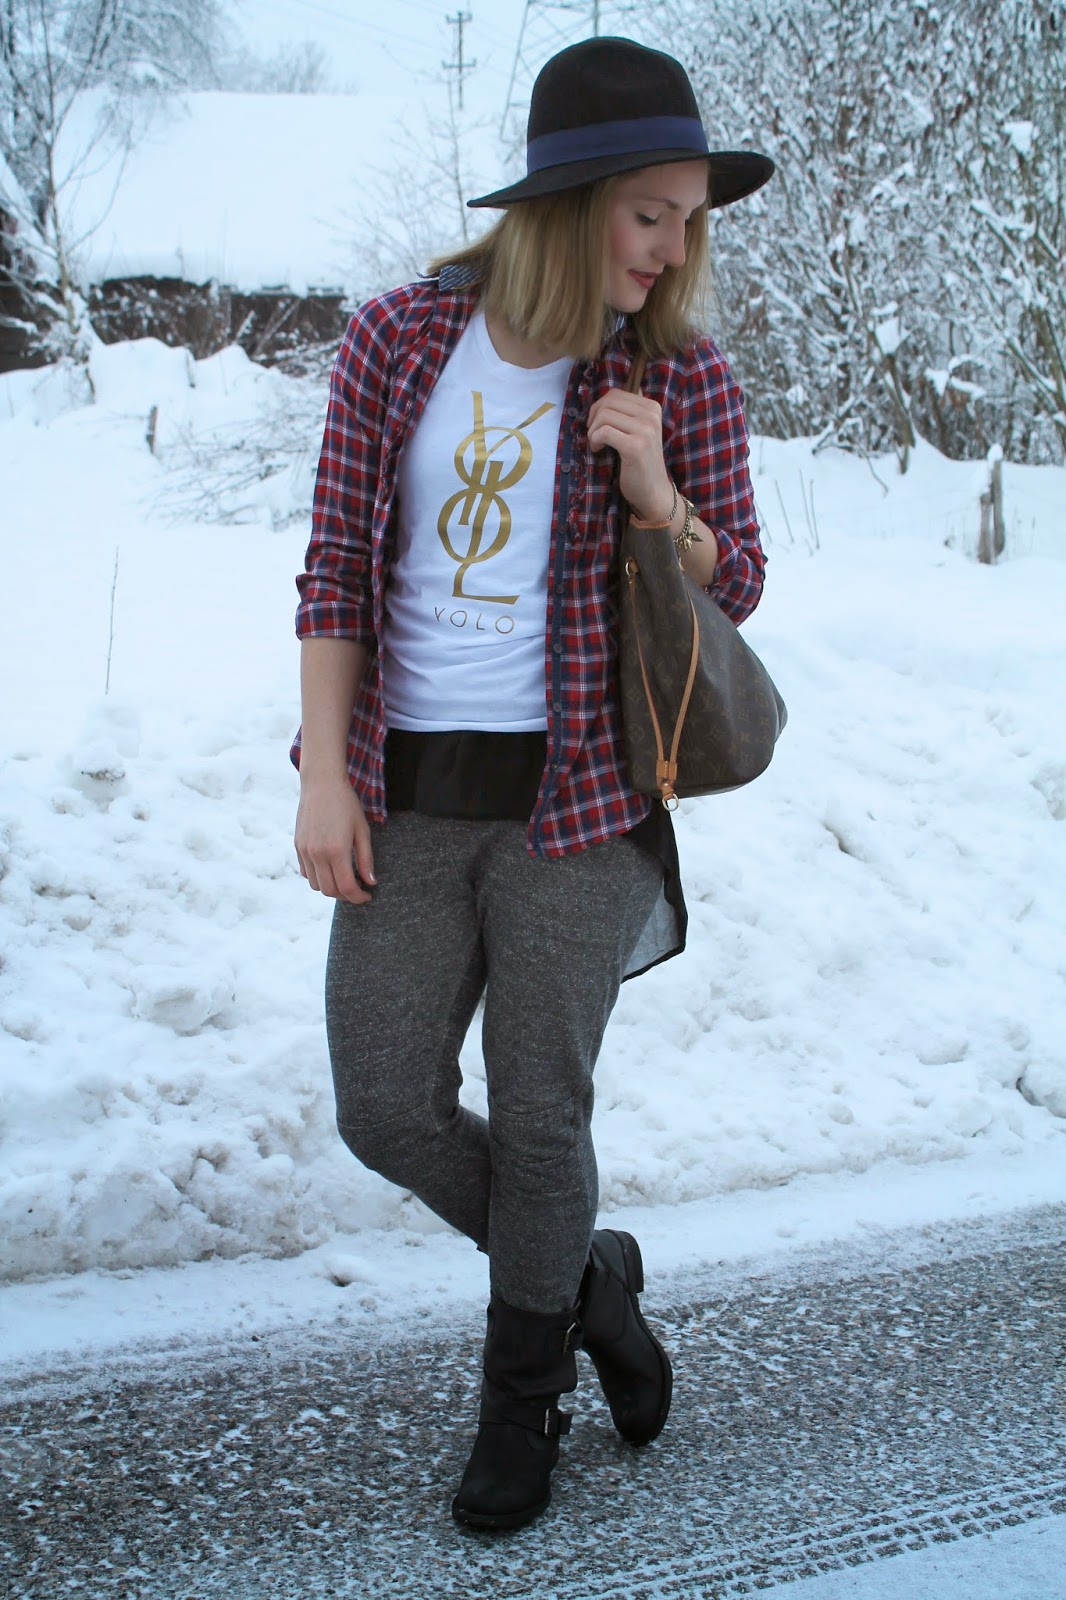 Yolo Shirts, Yolo Original, Fashion Blogger, Fashion Blogger Austria Österreich Kärnten Carinthia Klagenfurt, Sweatpants, Sweatpants Style, Sweatpants Look, Winter Look